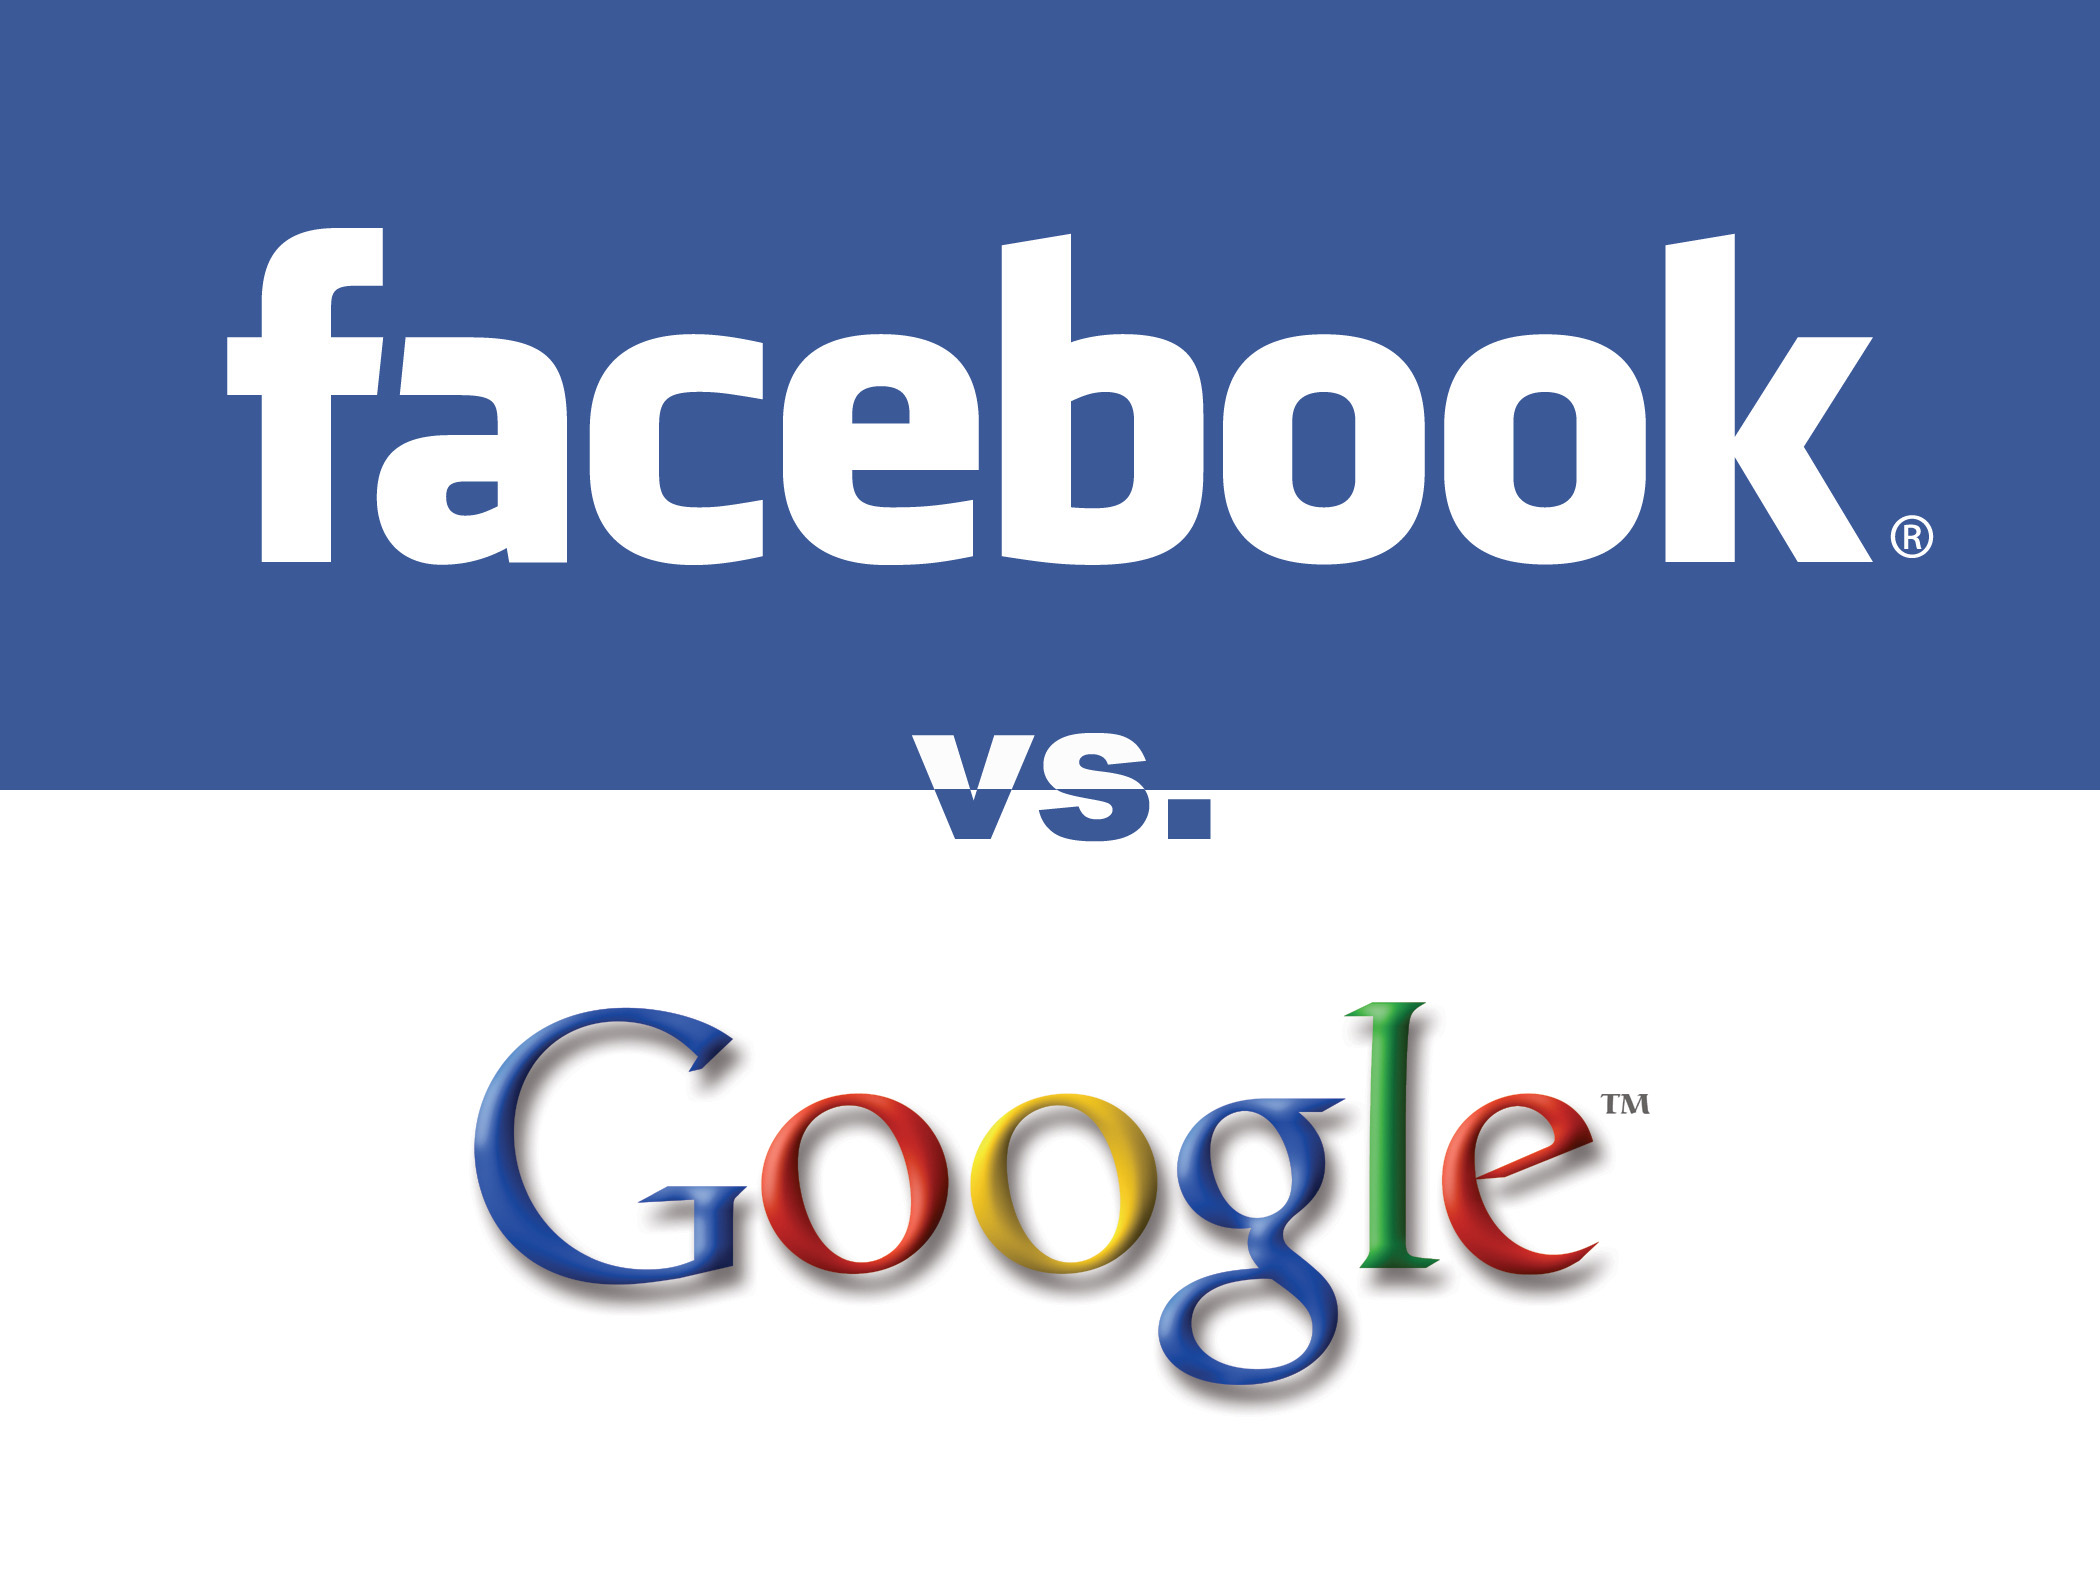 facebook_vs_google.jpg